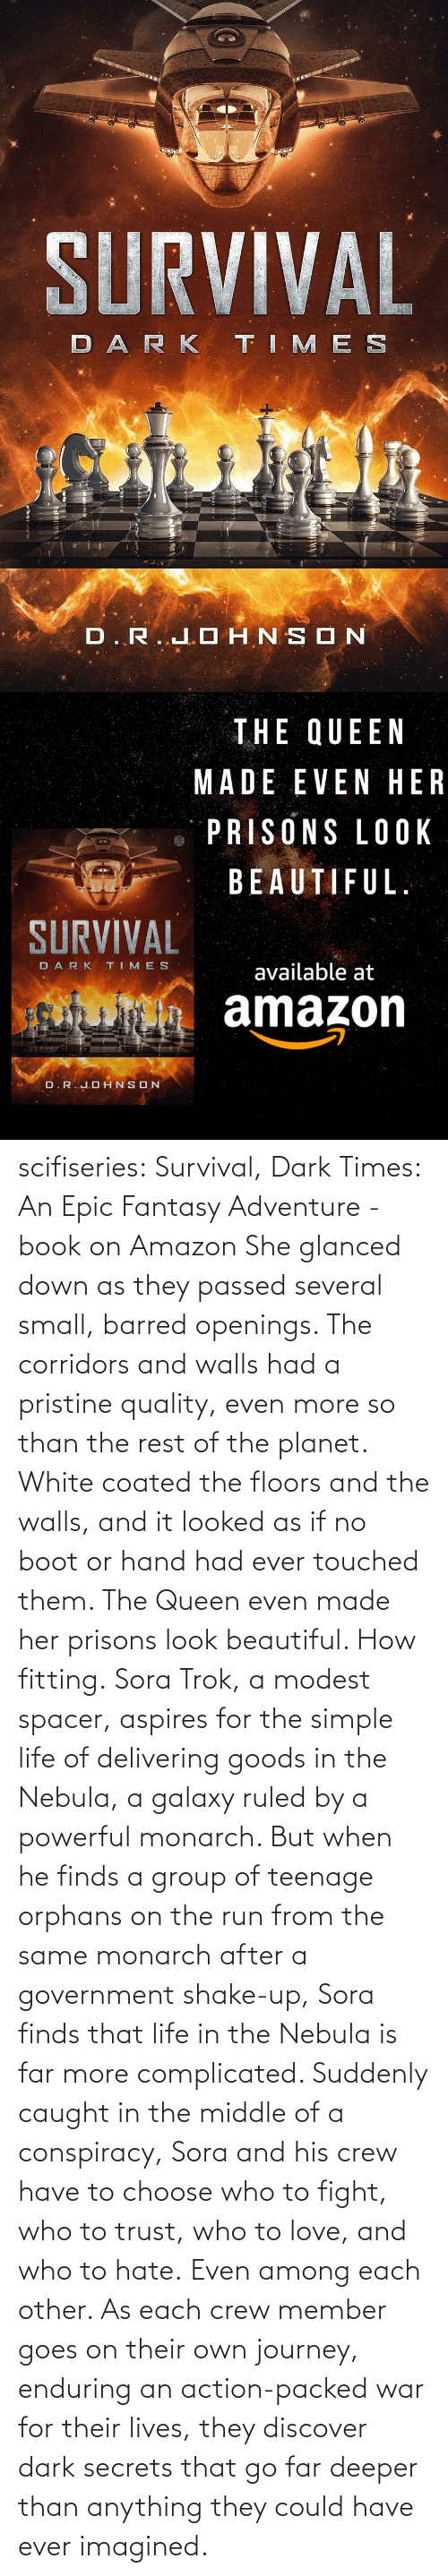 choose: scifiseries: Survival, Dark Times: An Epic Fantasy Adventure - book on Amazon  She glanced down as they  passed several small, barred openings. The corridors and walls had a  pristine quality, even more so than the rest of the planet. White coated  the floors and the walls, and it looked as if no boot or hand had ever  touched them.  The Queen even made her prisons look beautiful.  How fitting. Sora  Trok, a modest spacer, aspires for the simple life of delivering goods  in the Nebula, a galaxy ruled by a powerful monarch. But when he finds a  group of teenage orphans on the run from the same monarch after a  government shake-up, Sora finds that life in the Nebula is far more complicated.  Suddenly  caught in the middle of a conspiracy, Sora and his crew have to choose  who to fight, who to trust, who to love, and who to hate. Even among each other.  As  each crew member goes on their own journey, enduring an action-packed  war for their lives, they discover dark secrets that go far deeper than  anything they could have ever imagined.